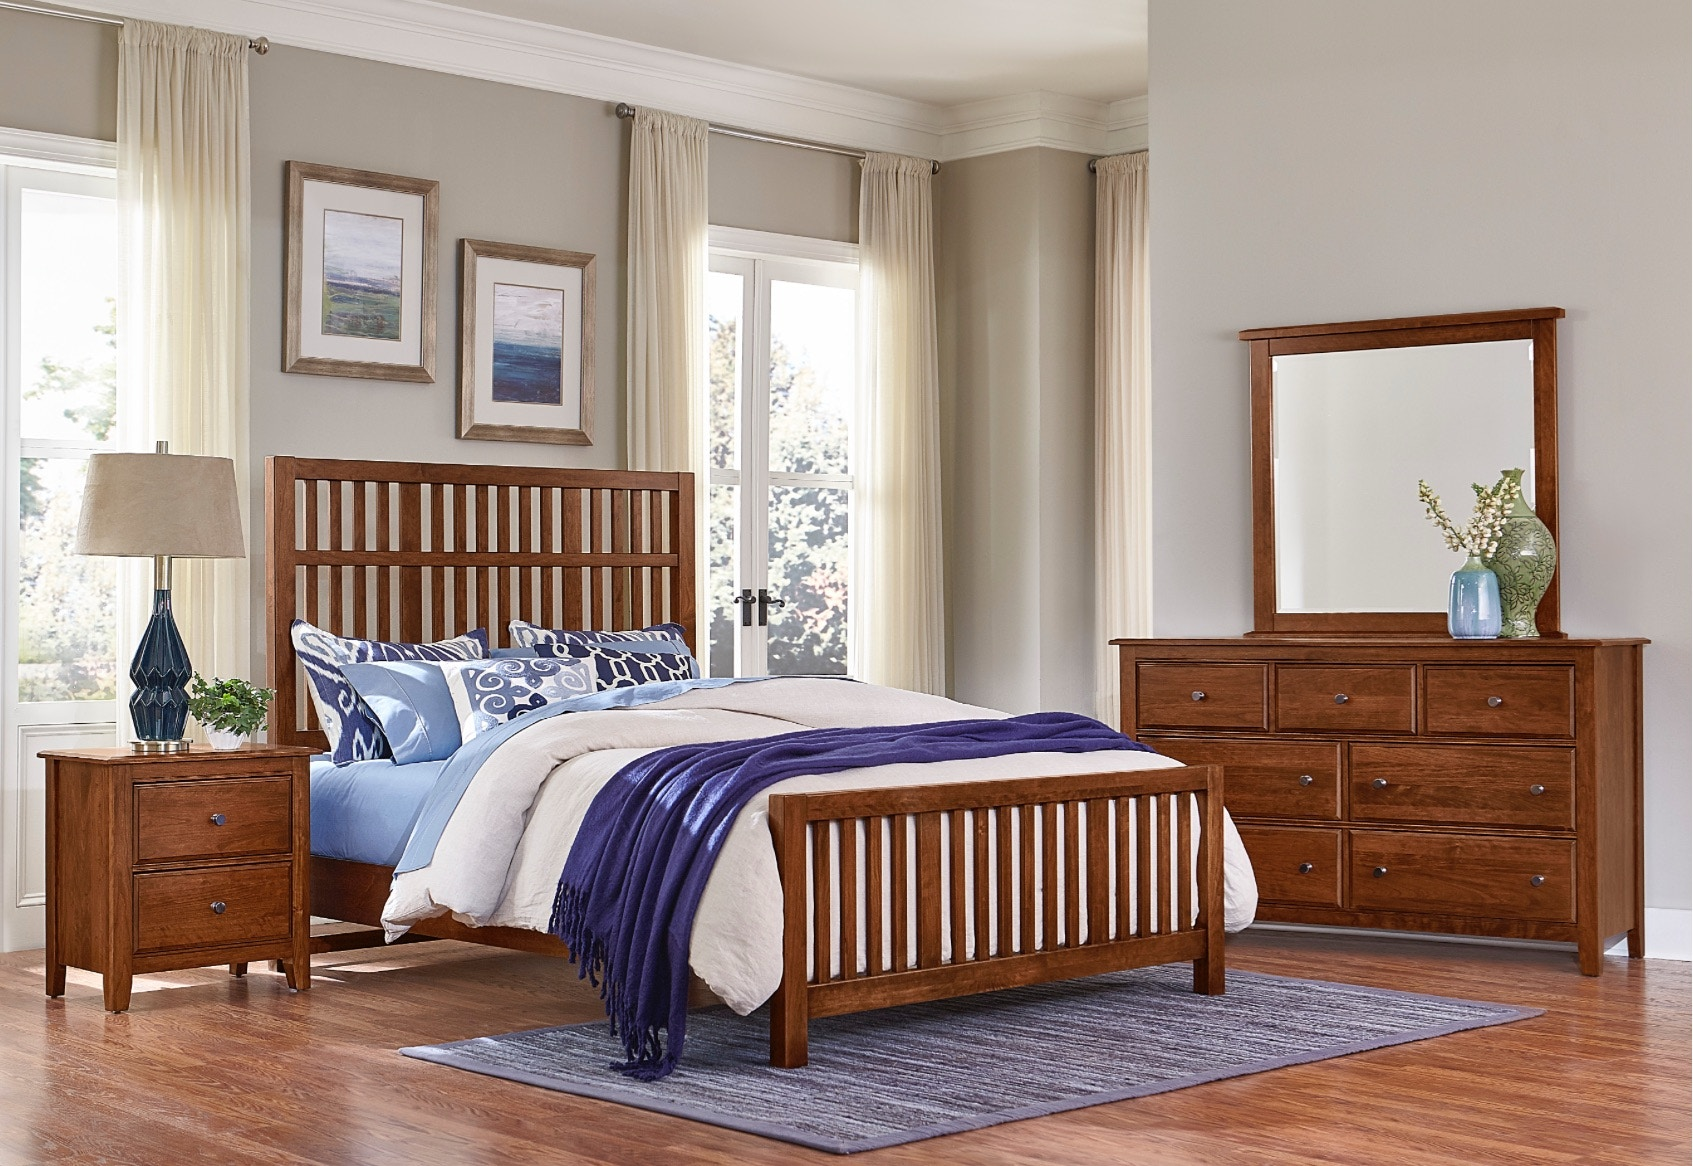 Vaughan Bassett Furniture Company Artisan U0026 Post Villa Craftsman Bedroom Set